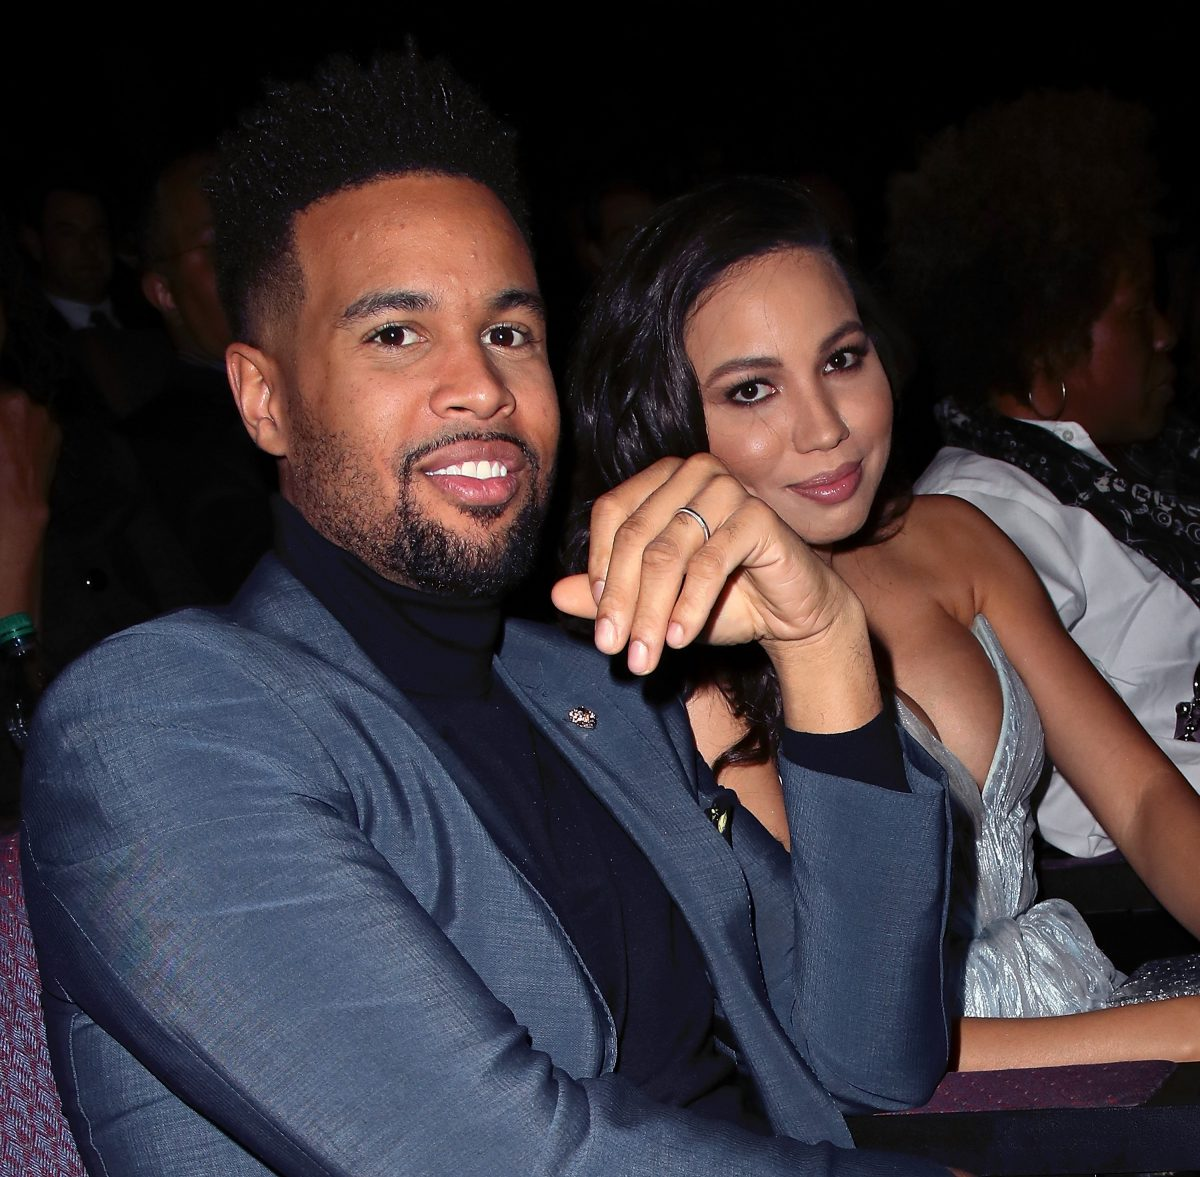 Josiah Bell and 'Lovecraft Country' star Jurnee Bell attending an event together as a married couple.